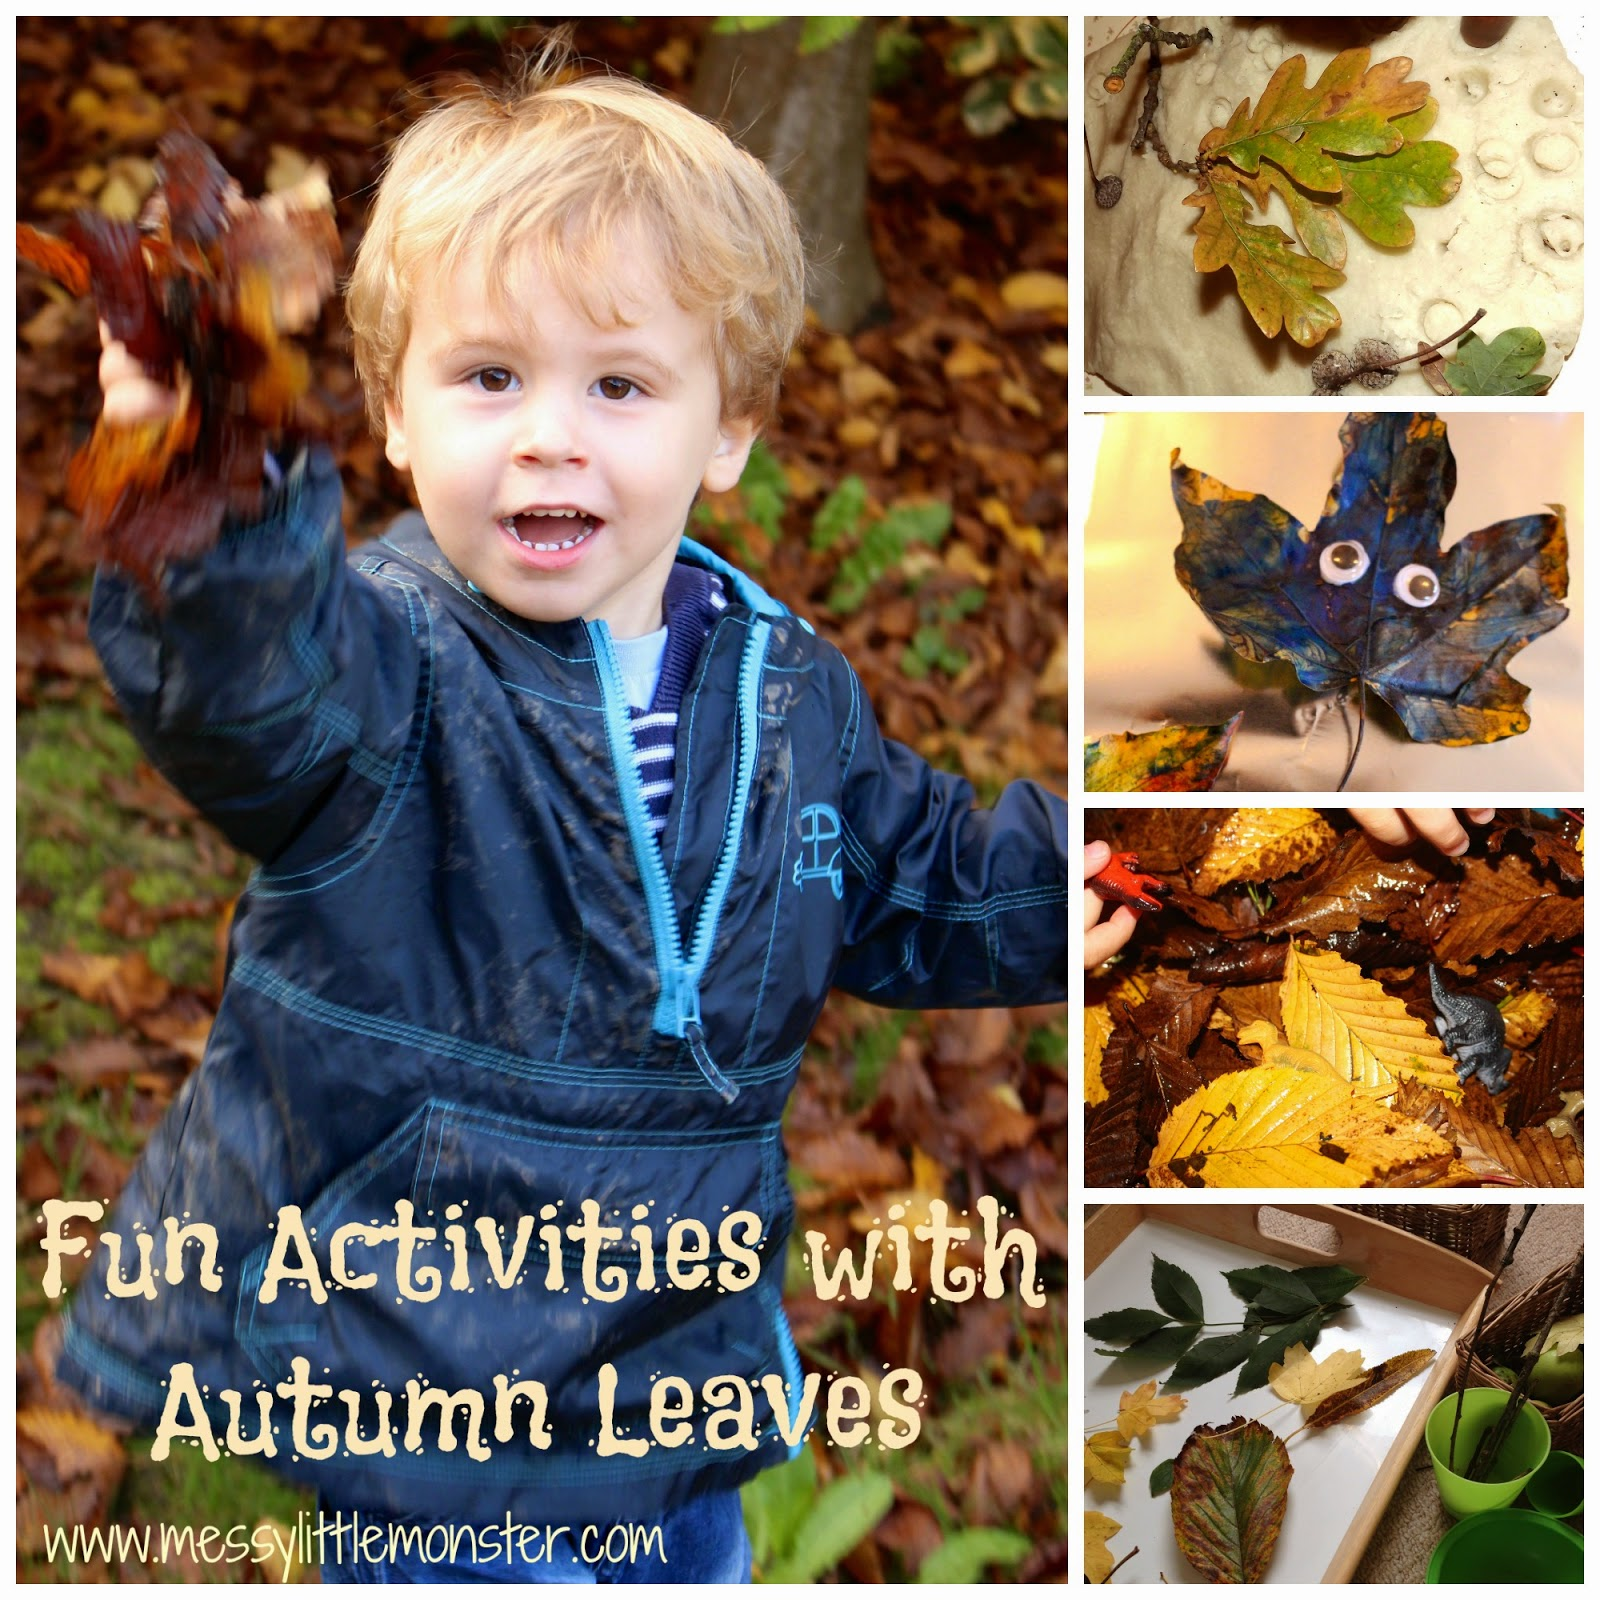 http://www.messylittlemonster.com/2014/11/fun-activities-with-autumn-leaves.html